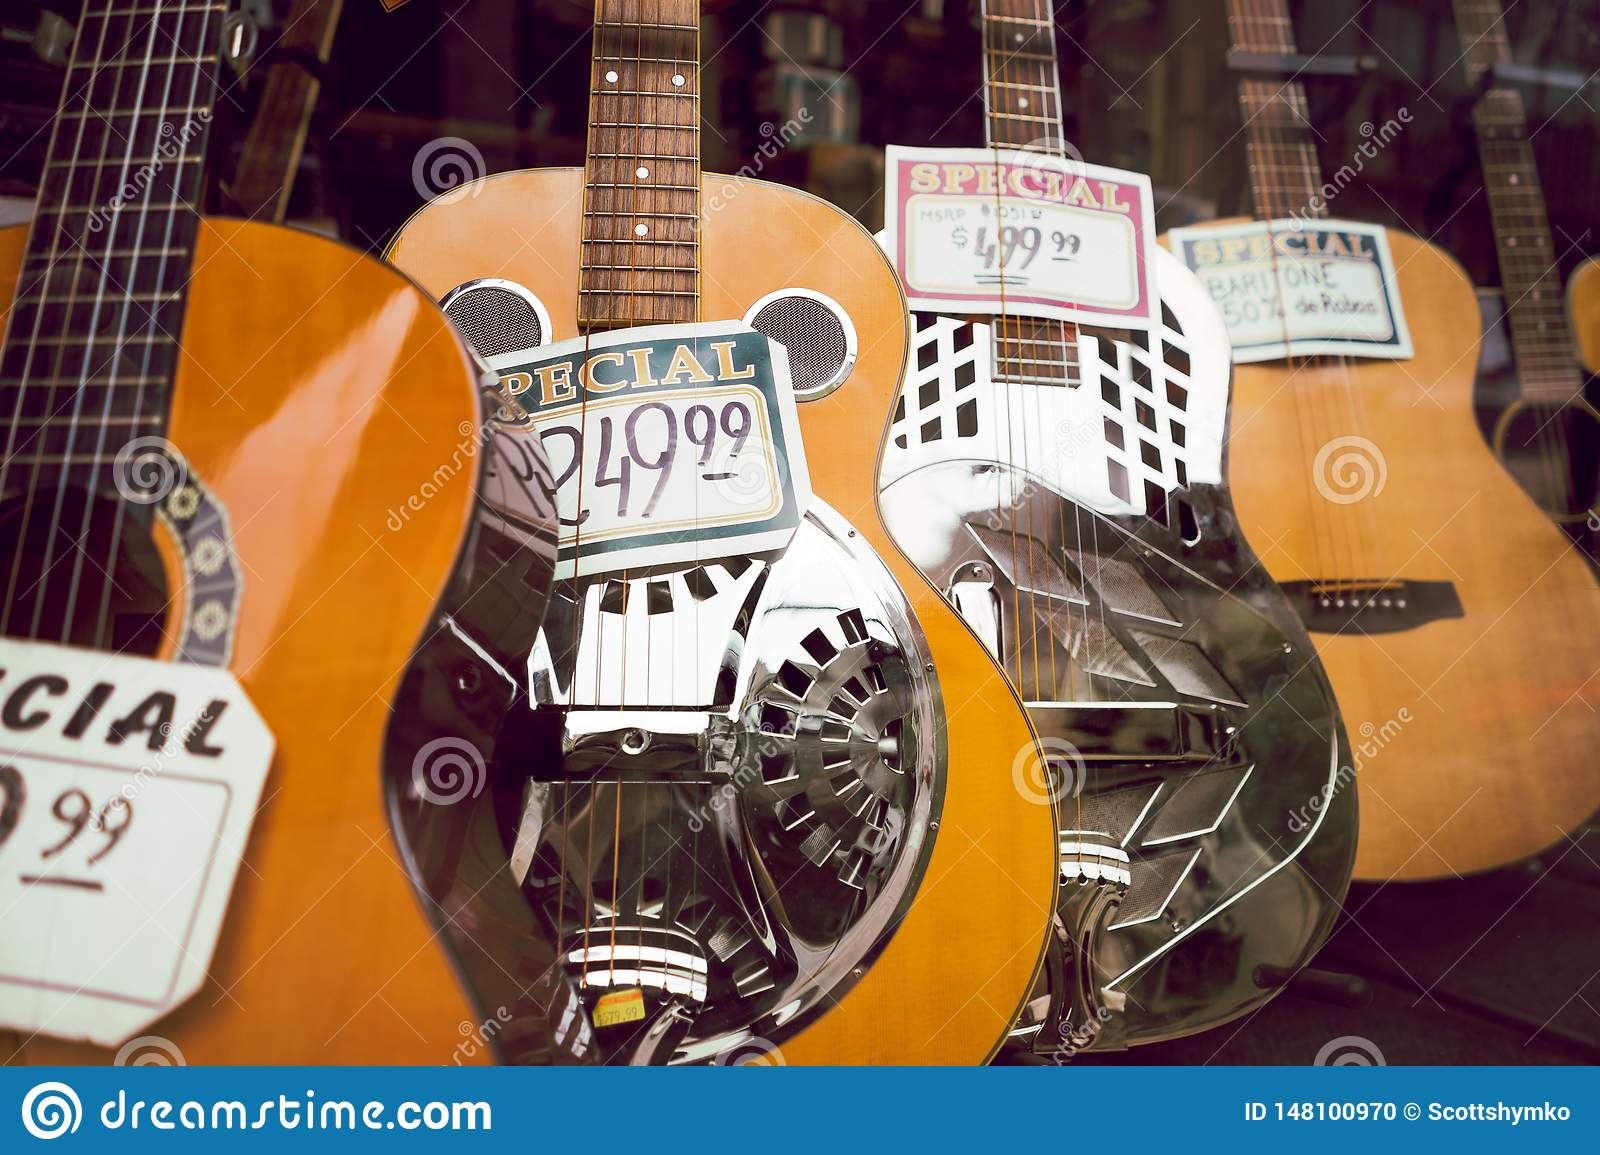 Acoustic guitars on display in shop window